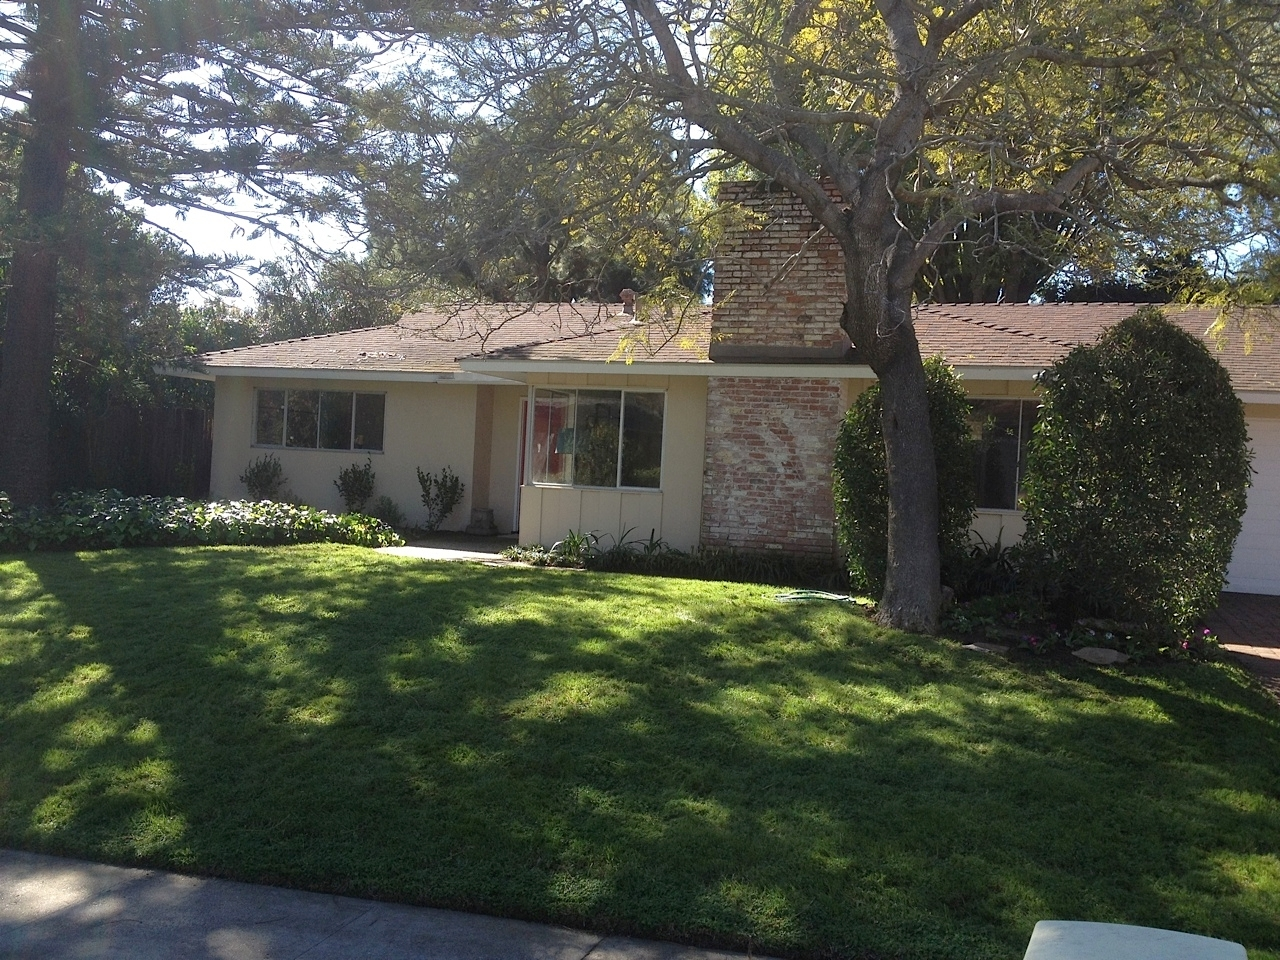 Property photo for 475 N Turnpike Rd Santa Barbara, California 93111 - 13-414